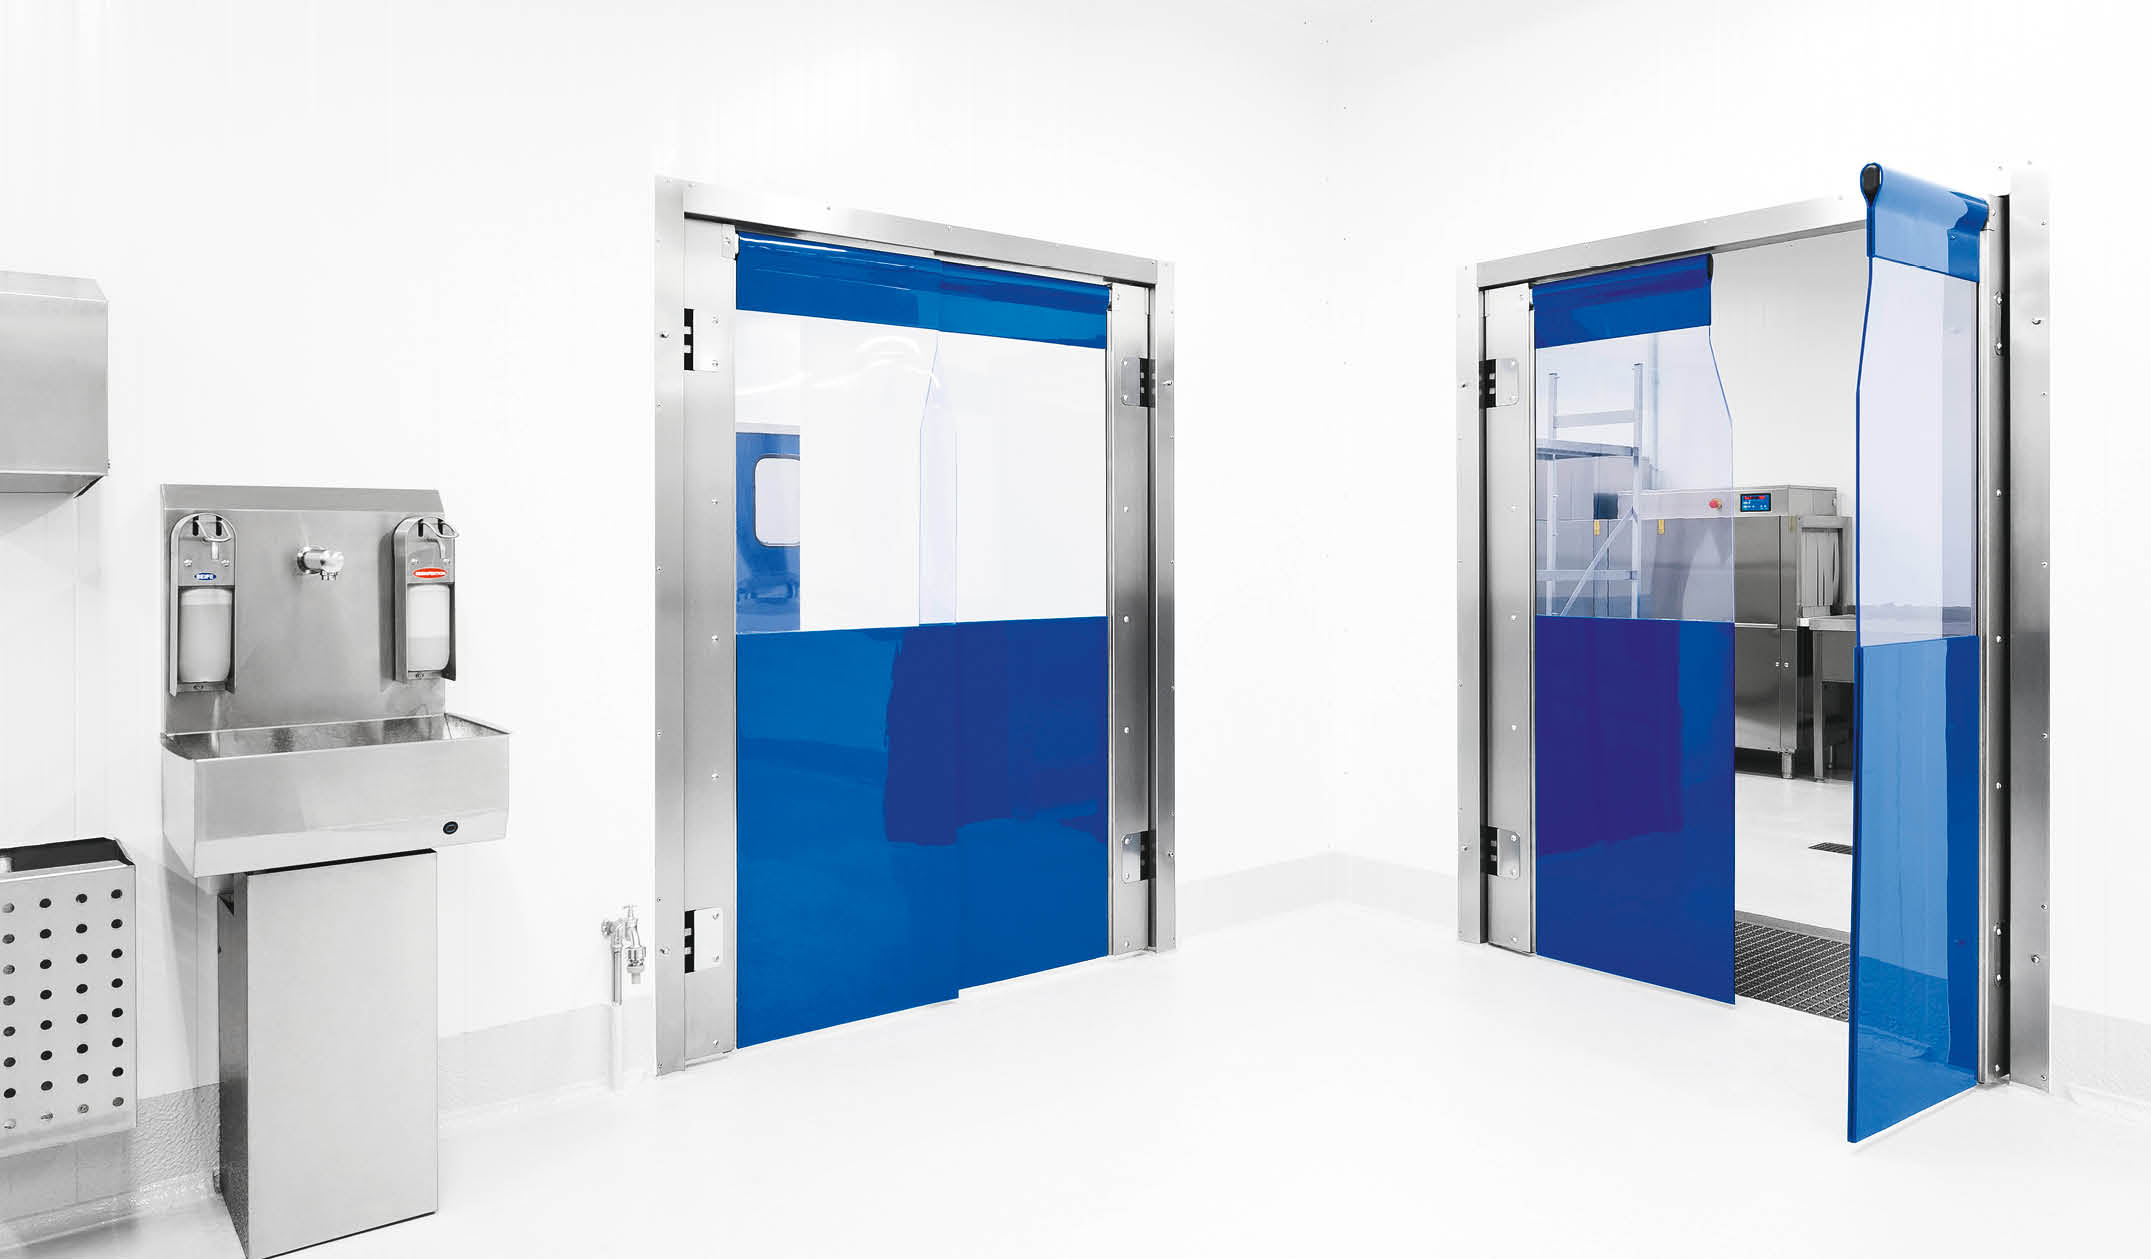 ZP7 Double-leaf PVC-swing door with coloured doubling as skirting protection